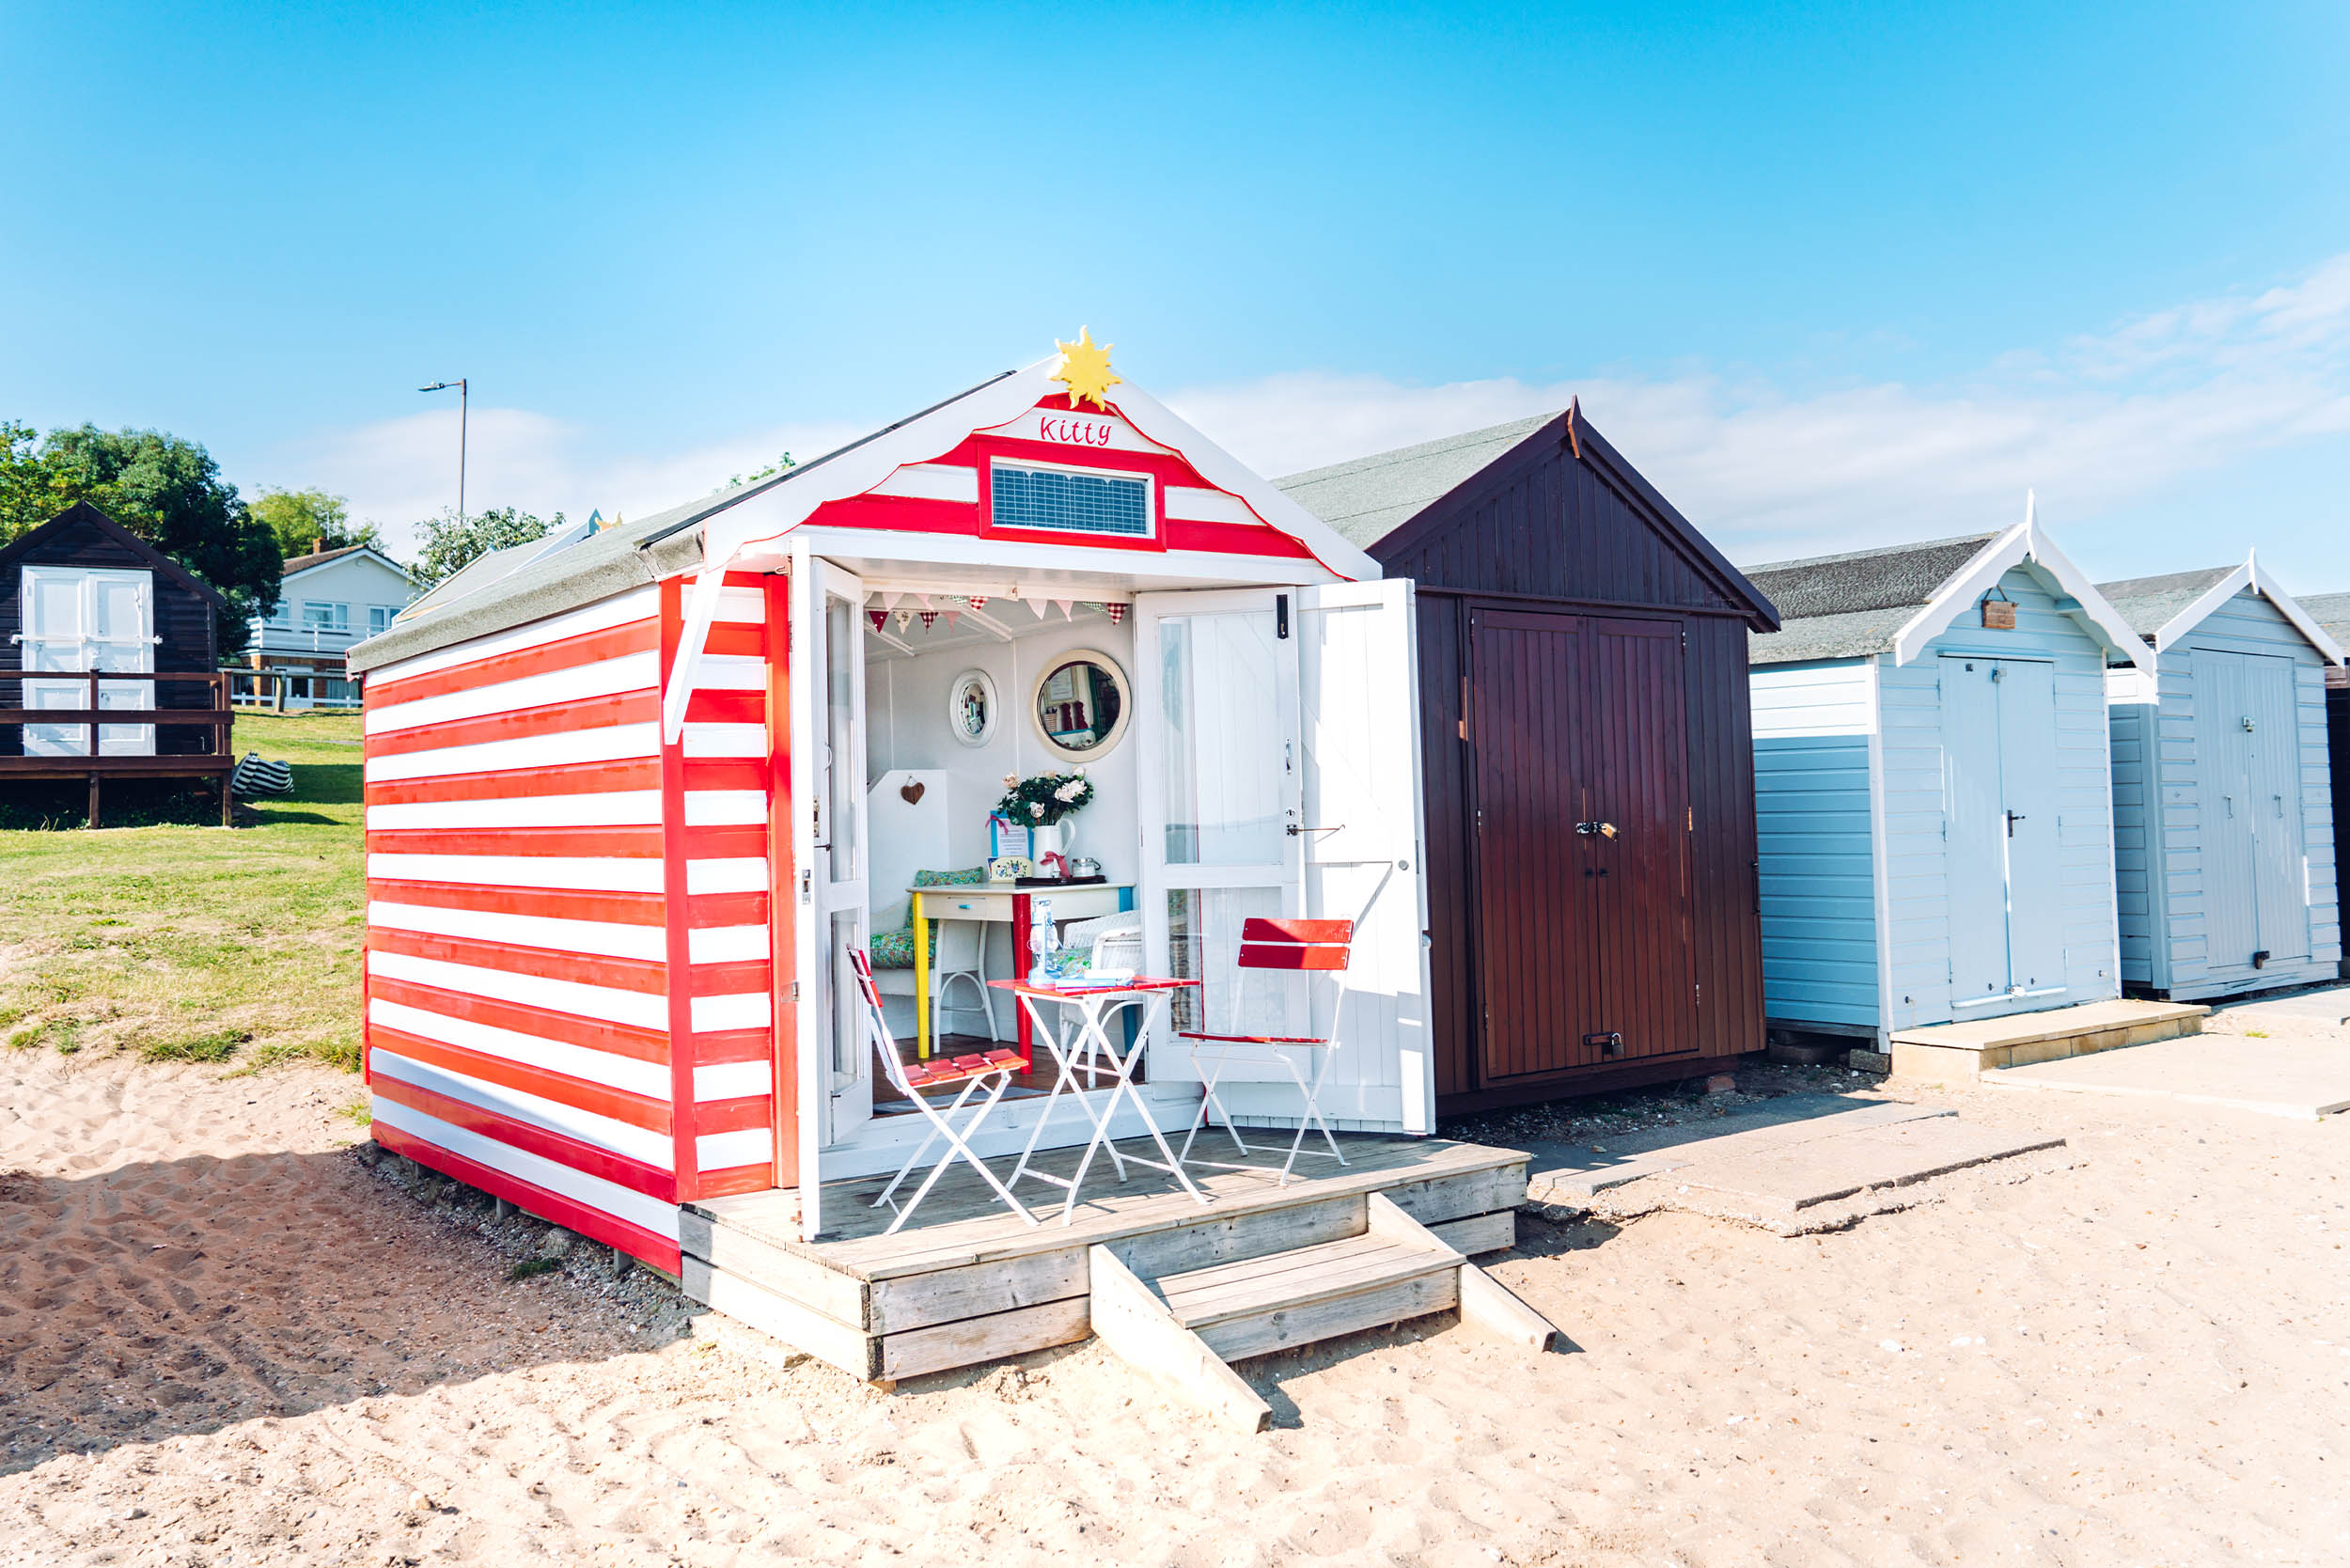 Kitty is a finalist in The Beach Hut of The Year Award 2017